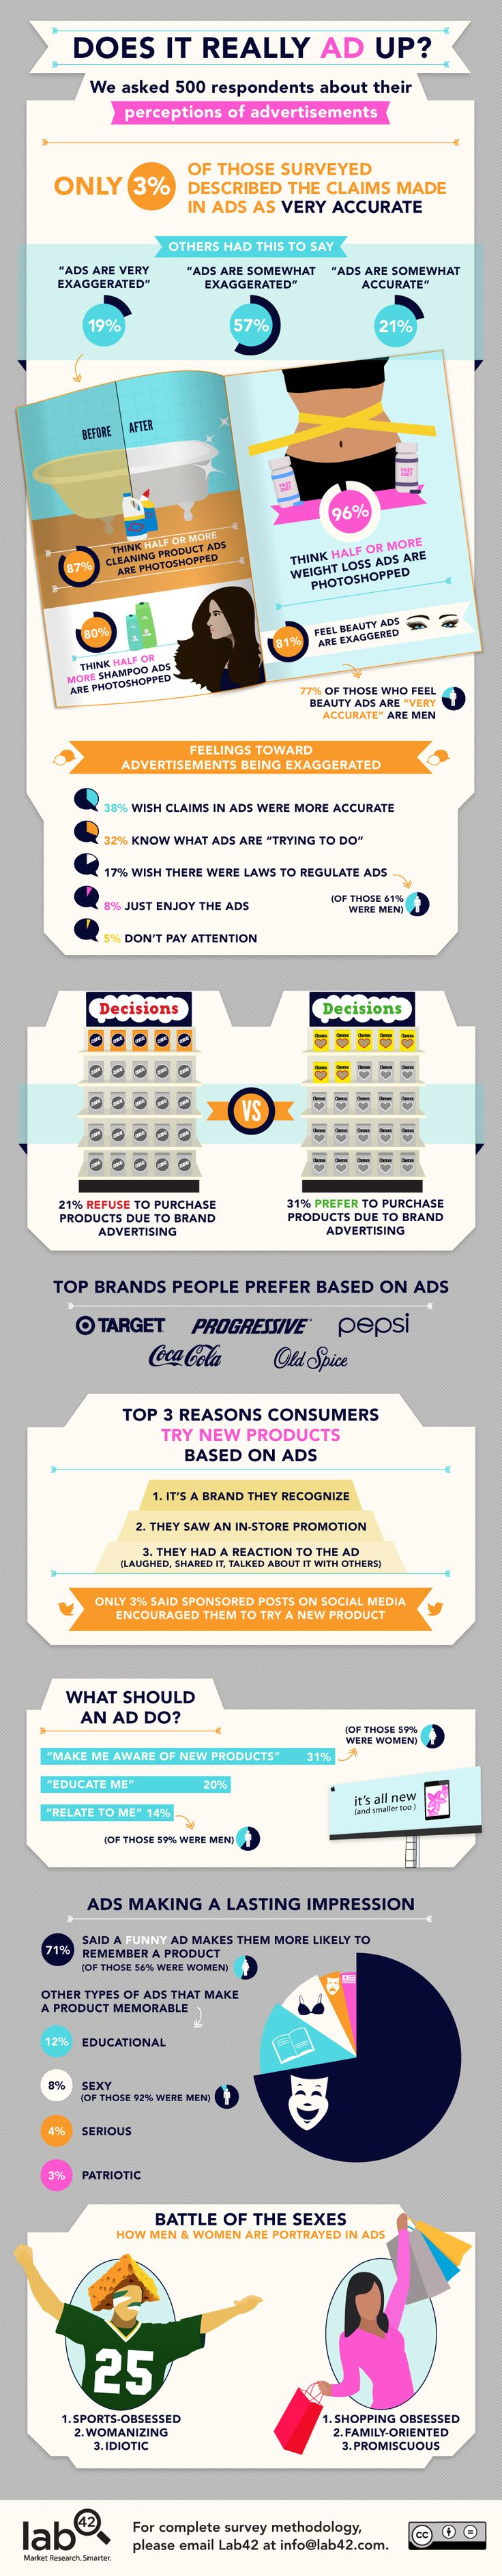 Lab42's study reveals that 76% of its respondents think advertisements contain exaggerated claims. How is advertising's credibility? Here's an infographic.